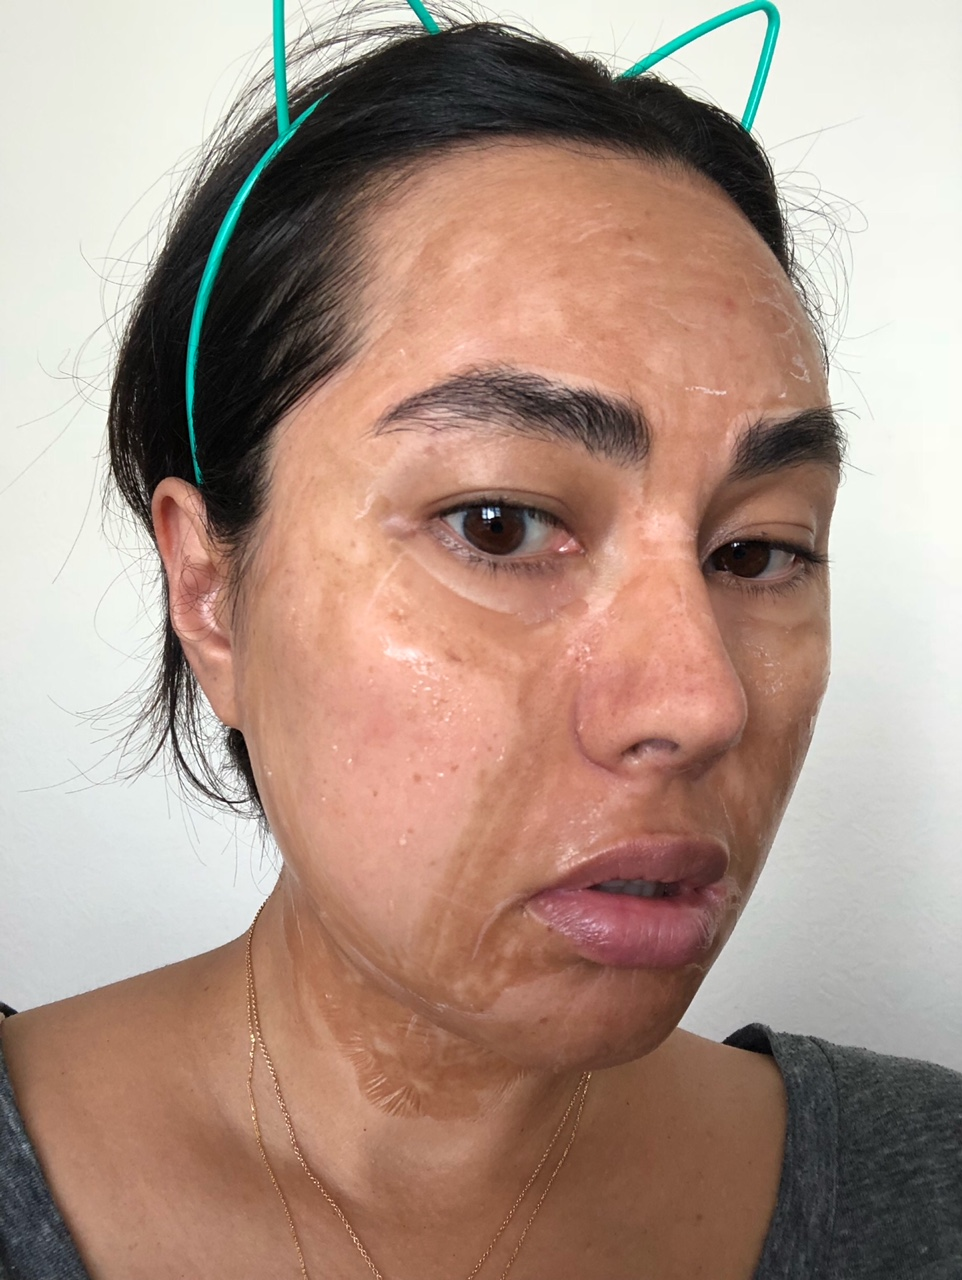 25 min - my sister tried to FaceTime me at this point and when I picked up, she choked on her quesadilla. I can't be sure, but my hunch is that it had something to do with the fact that I'm starting to look like an old avocado pit. -